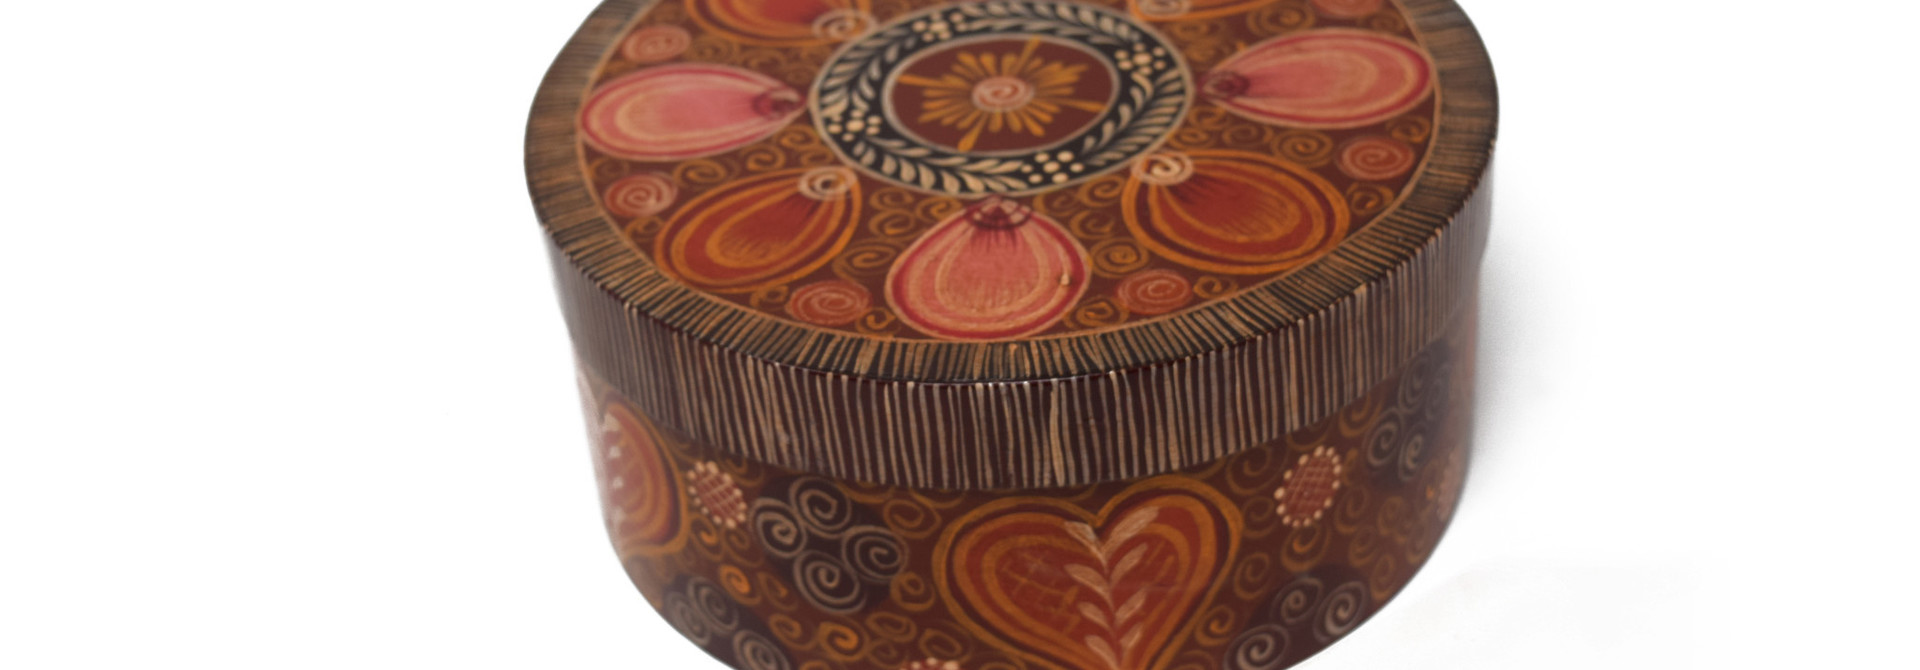 Round Brown box with designs